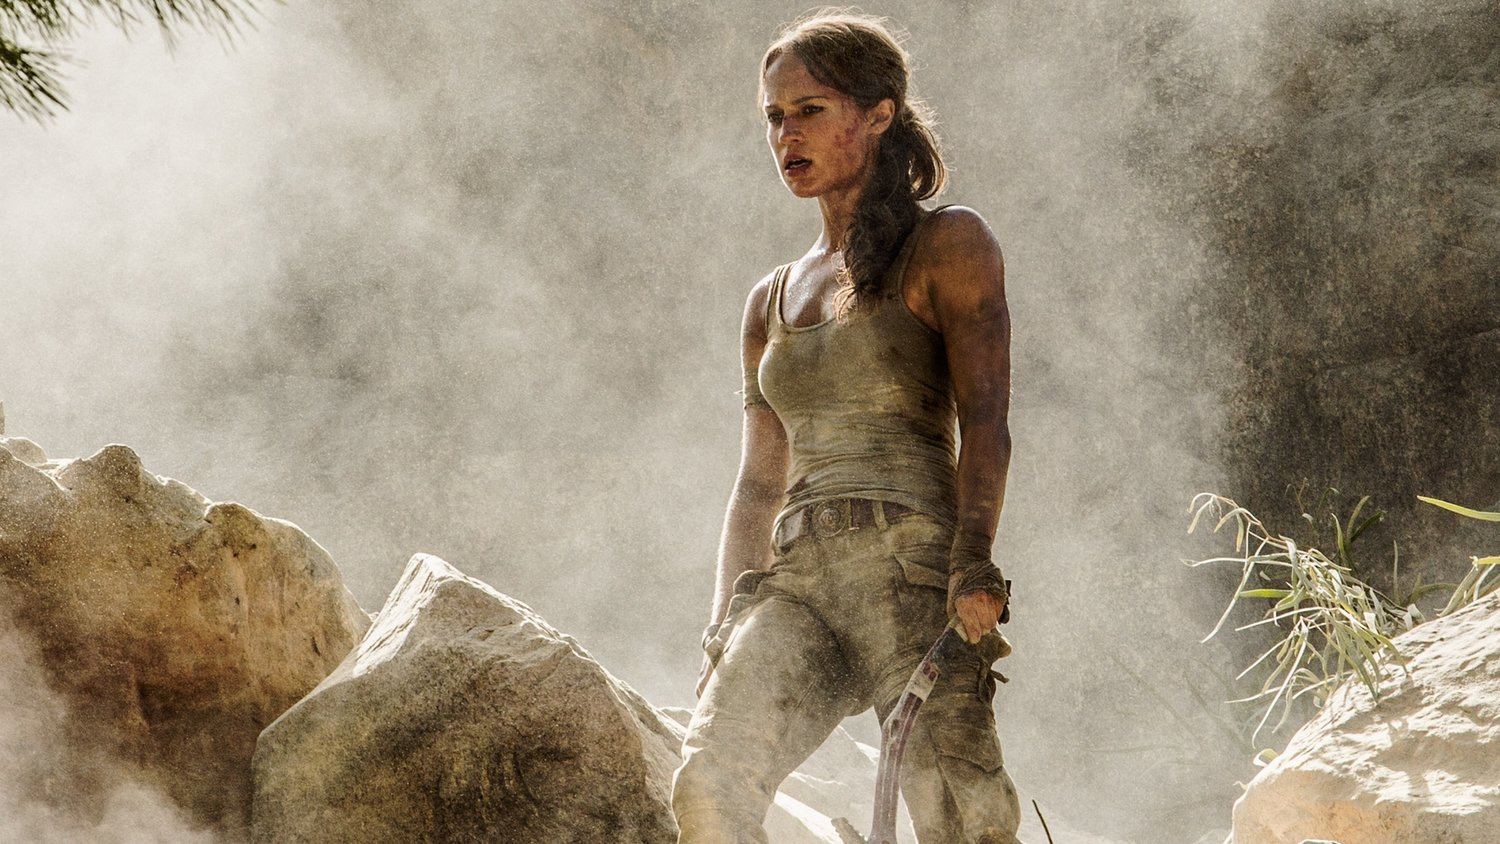 First Official Photos of Alicia Vikander as Lara Croft in TOMB RAIDER and Plot Synopsis